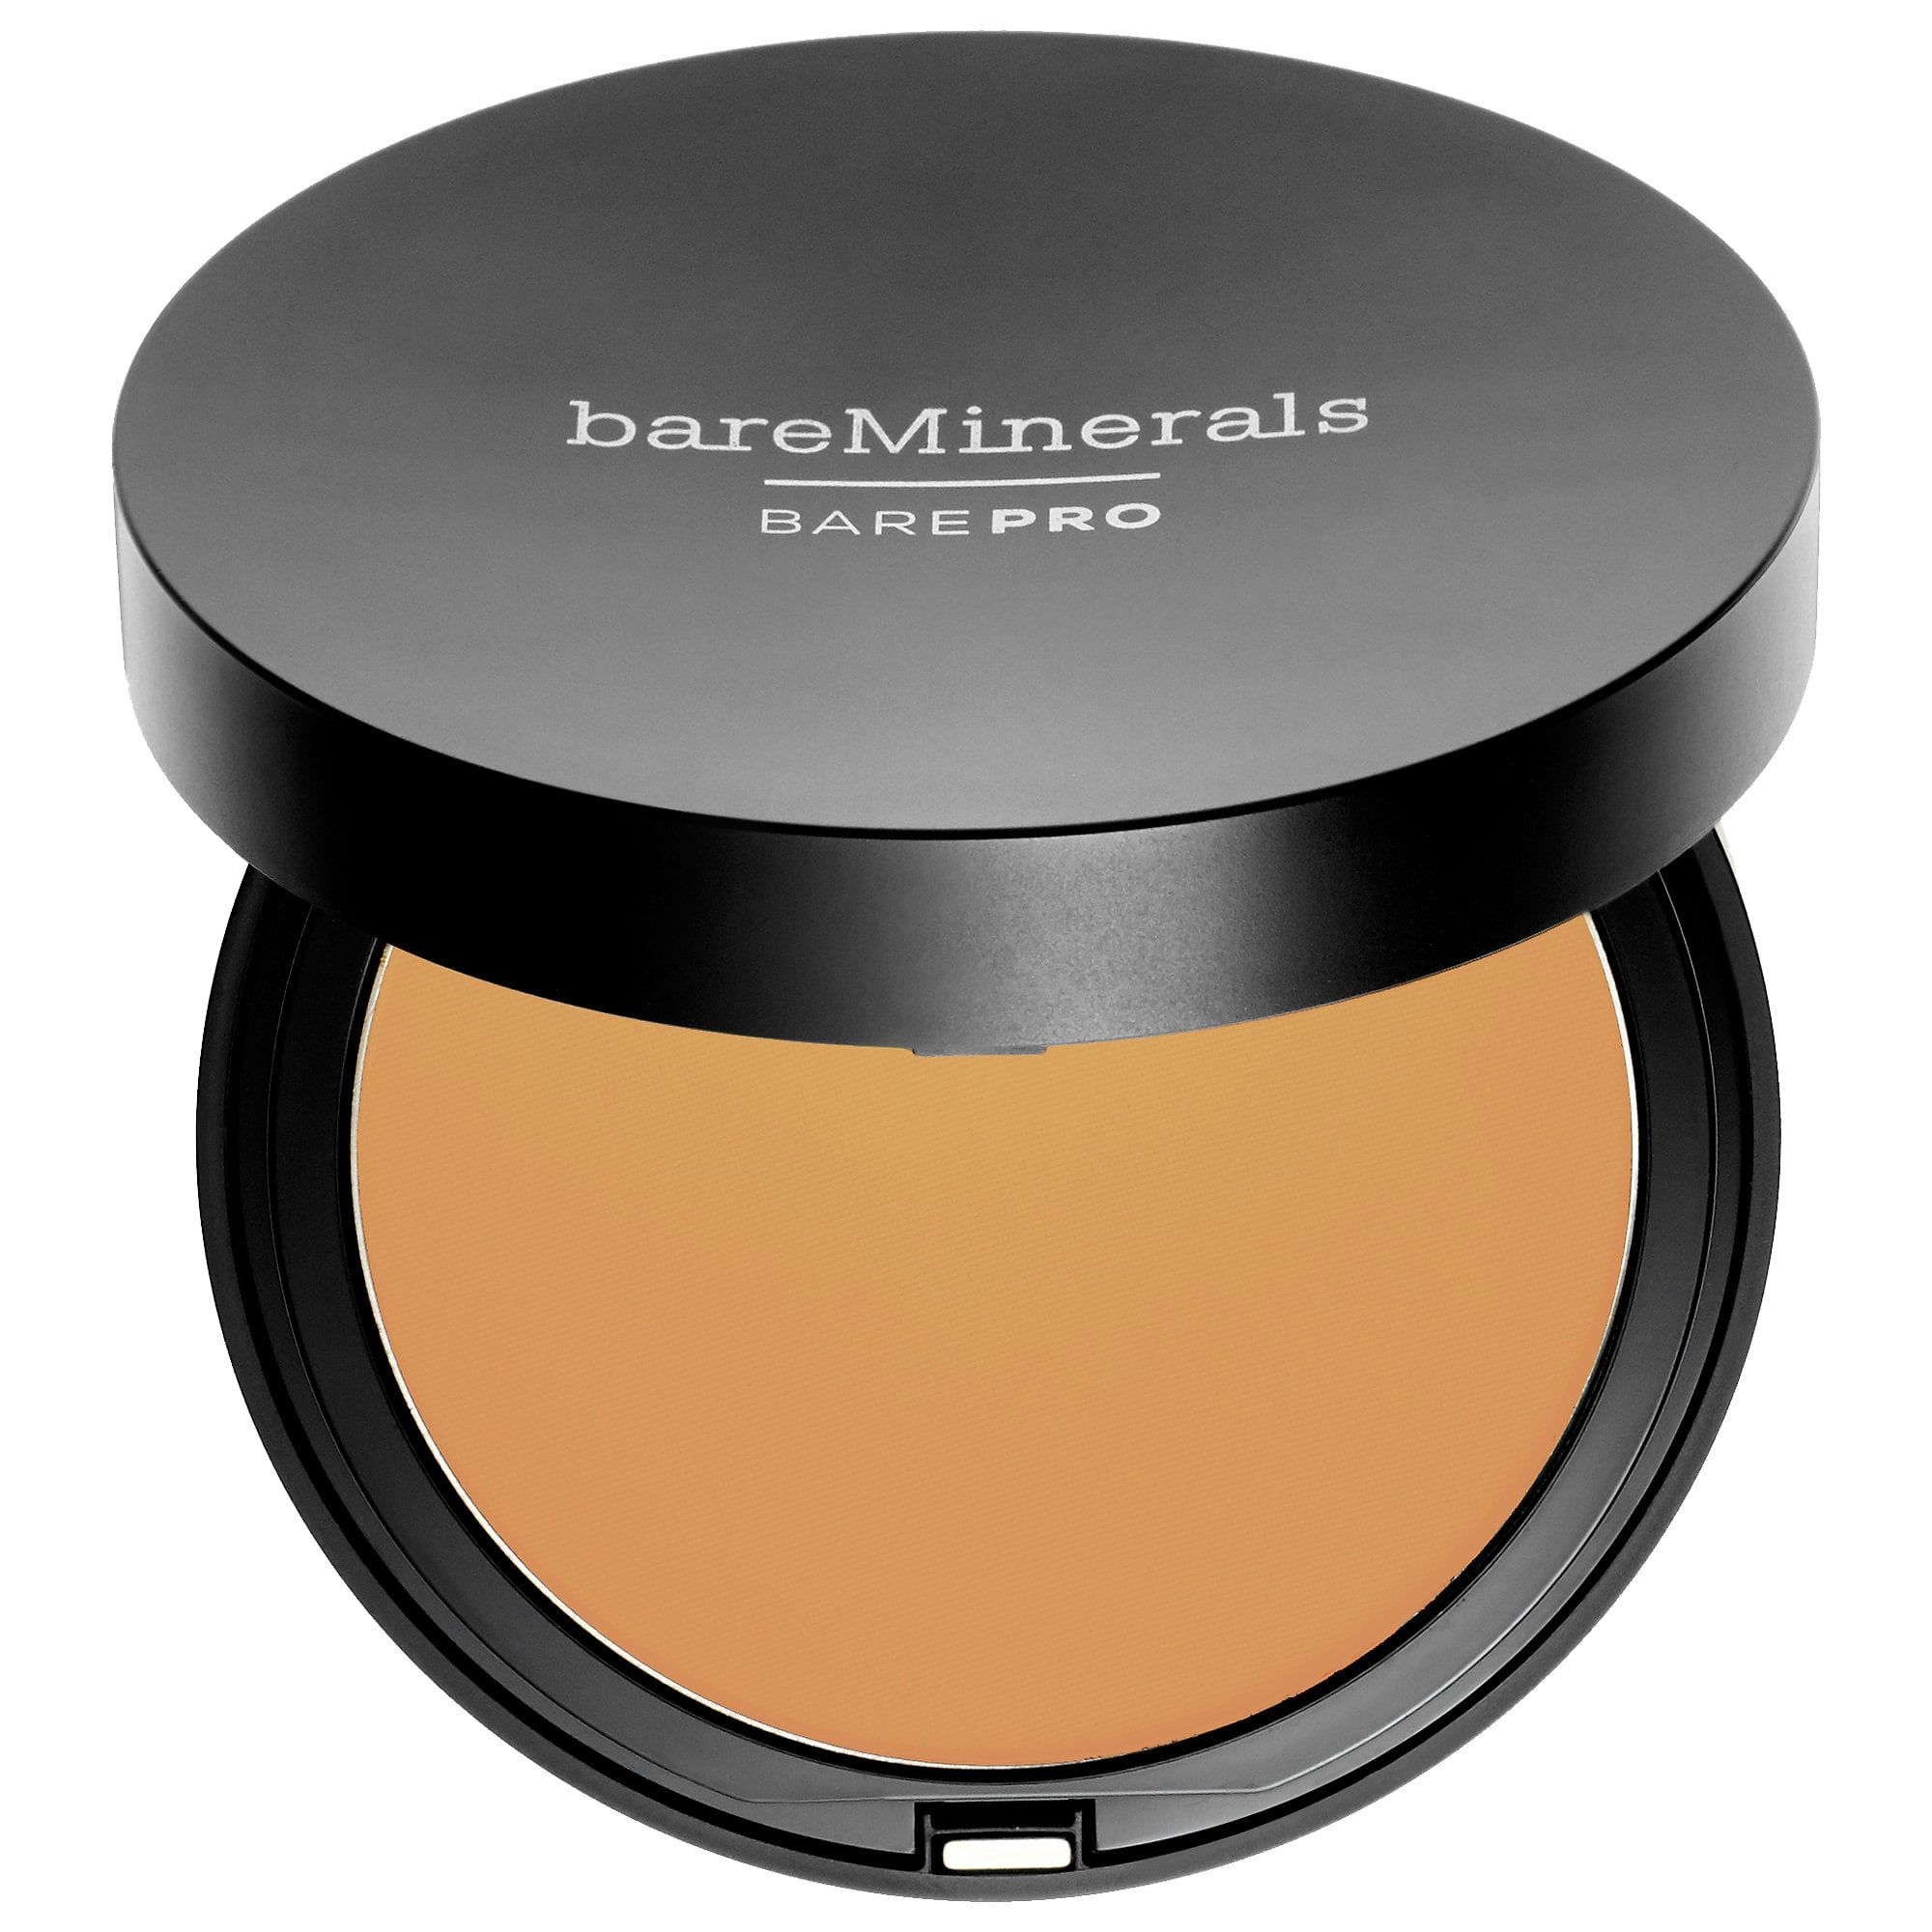 For Covering Up Acne BarePro Performance Wear Powder Foundation bareMinerals sephora.com $31.00 SHOP NOW You might want to ditch liquid foundations for good after trying this popular powder. Its velvety consistency and full coverage capabilities make it a keeper—plus, it is noncomedogenic so your acne-prone skin won't be getting clogged up.